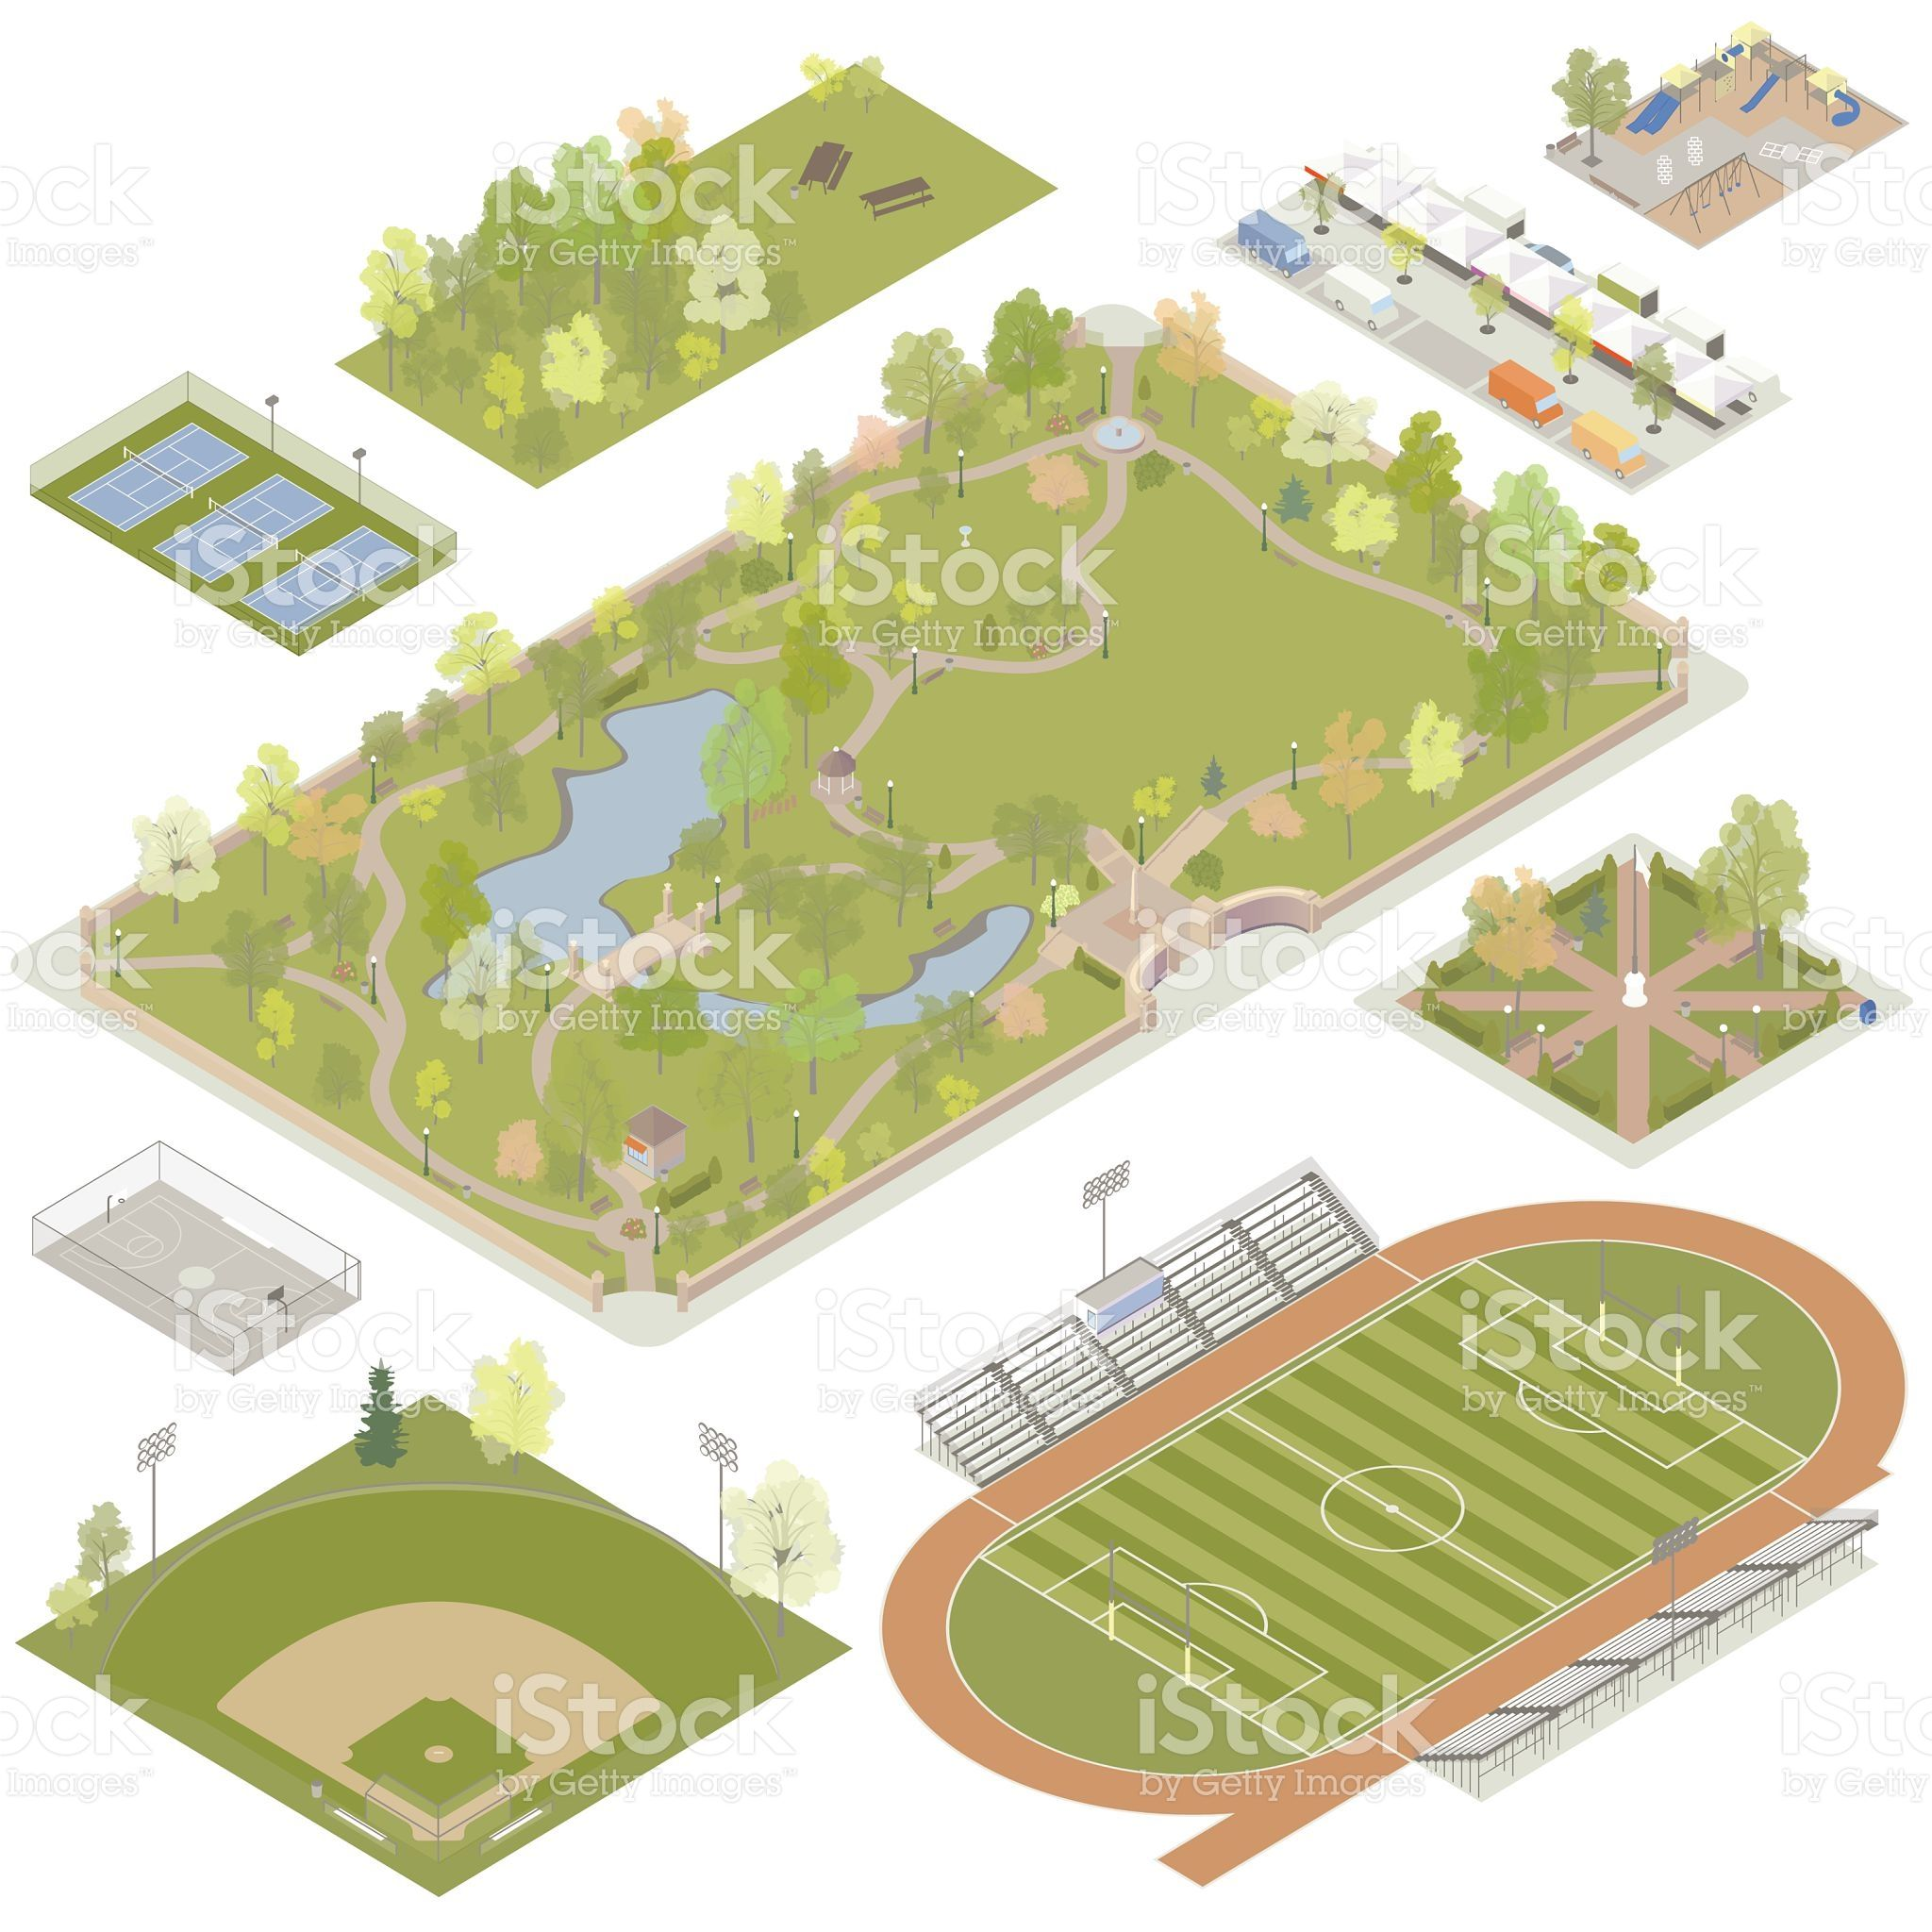 Illustrations Of Detailed Parks Plazas And Playgrounds Include 公園 イラストレーション ベクターイラスト